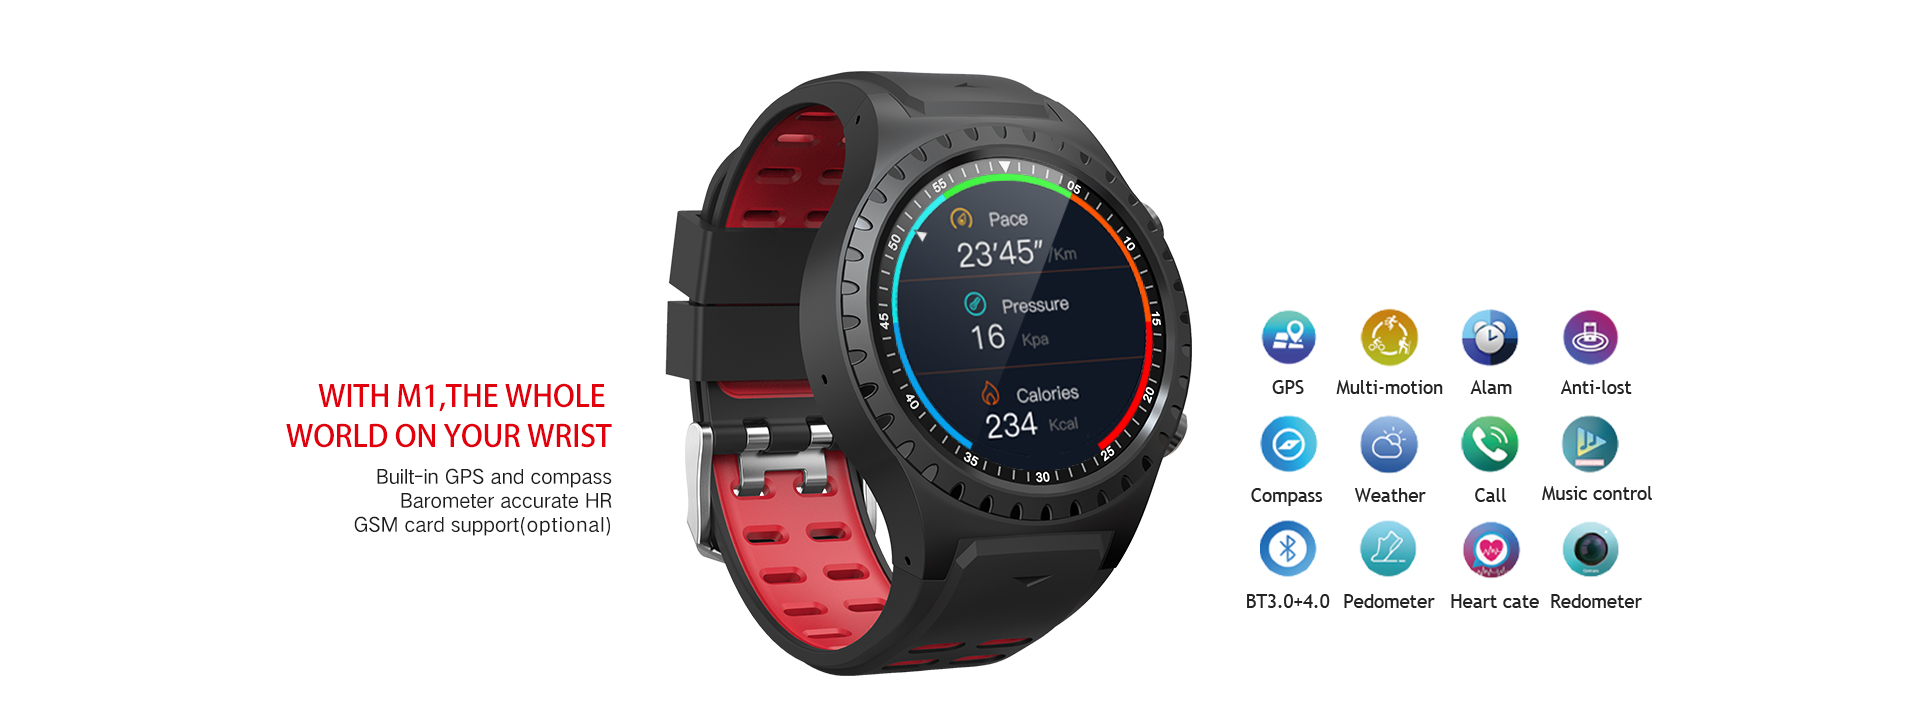 GPS smart watch with pedometer BT3.0+4.0 message heart rate monitor and remote capture for 2019